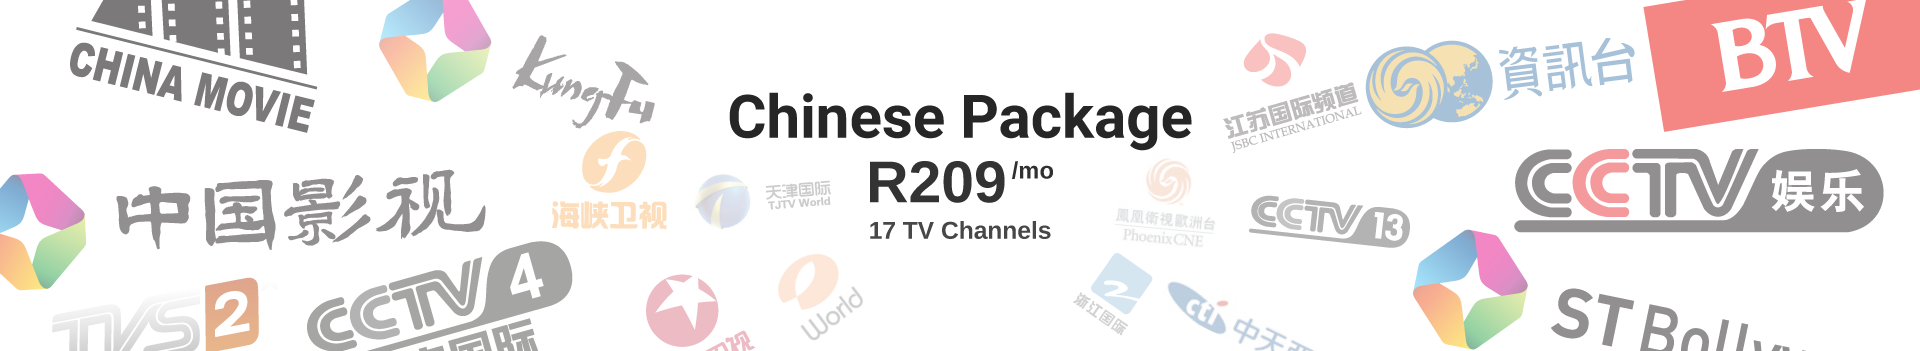 Chinese Package: R209/mo